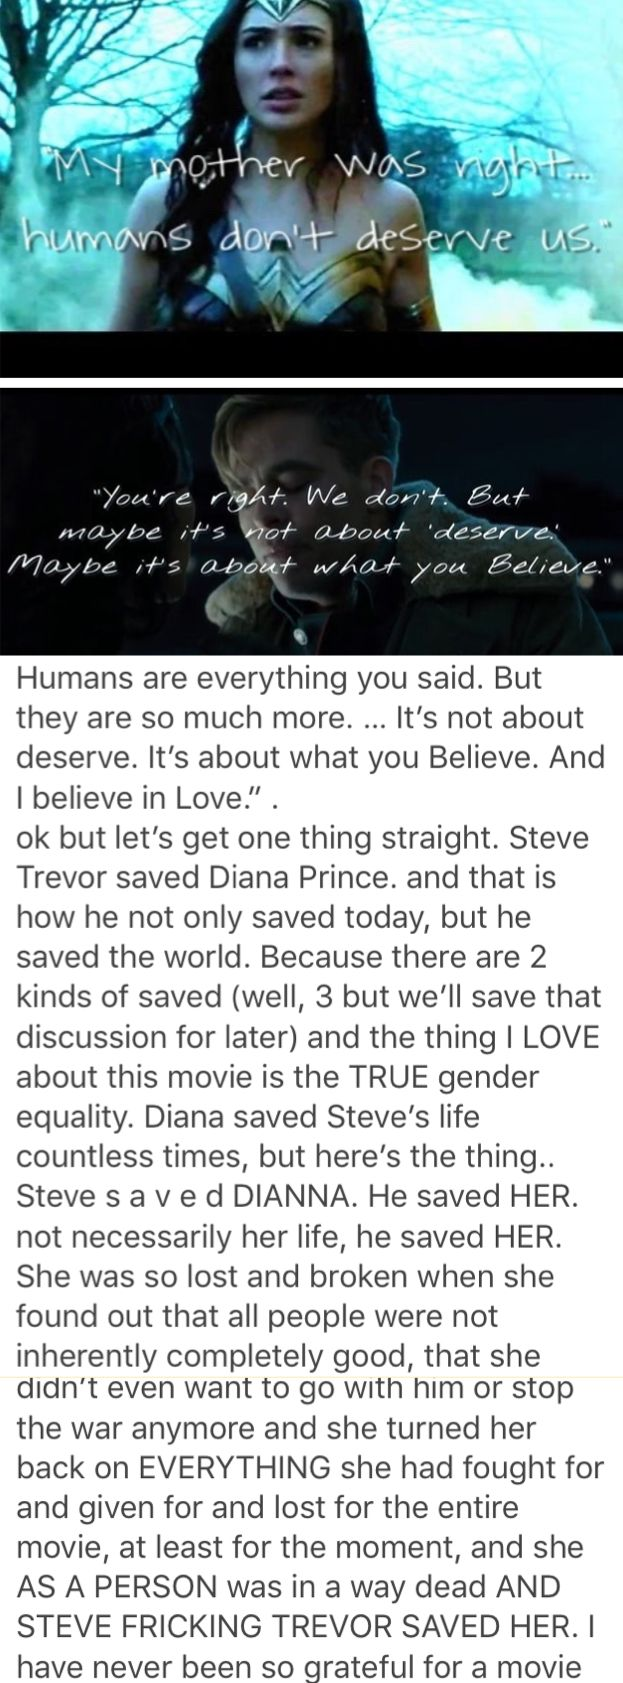 As someone said to me: Men save women and Women save men. Loved this aspect of the movie!